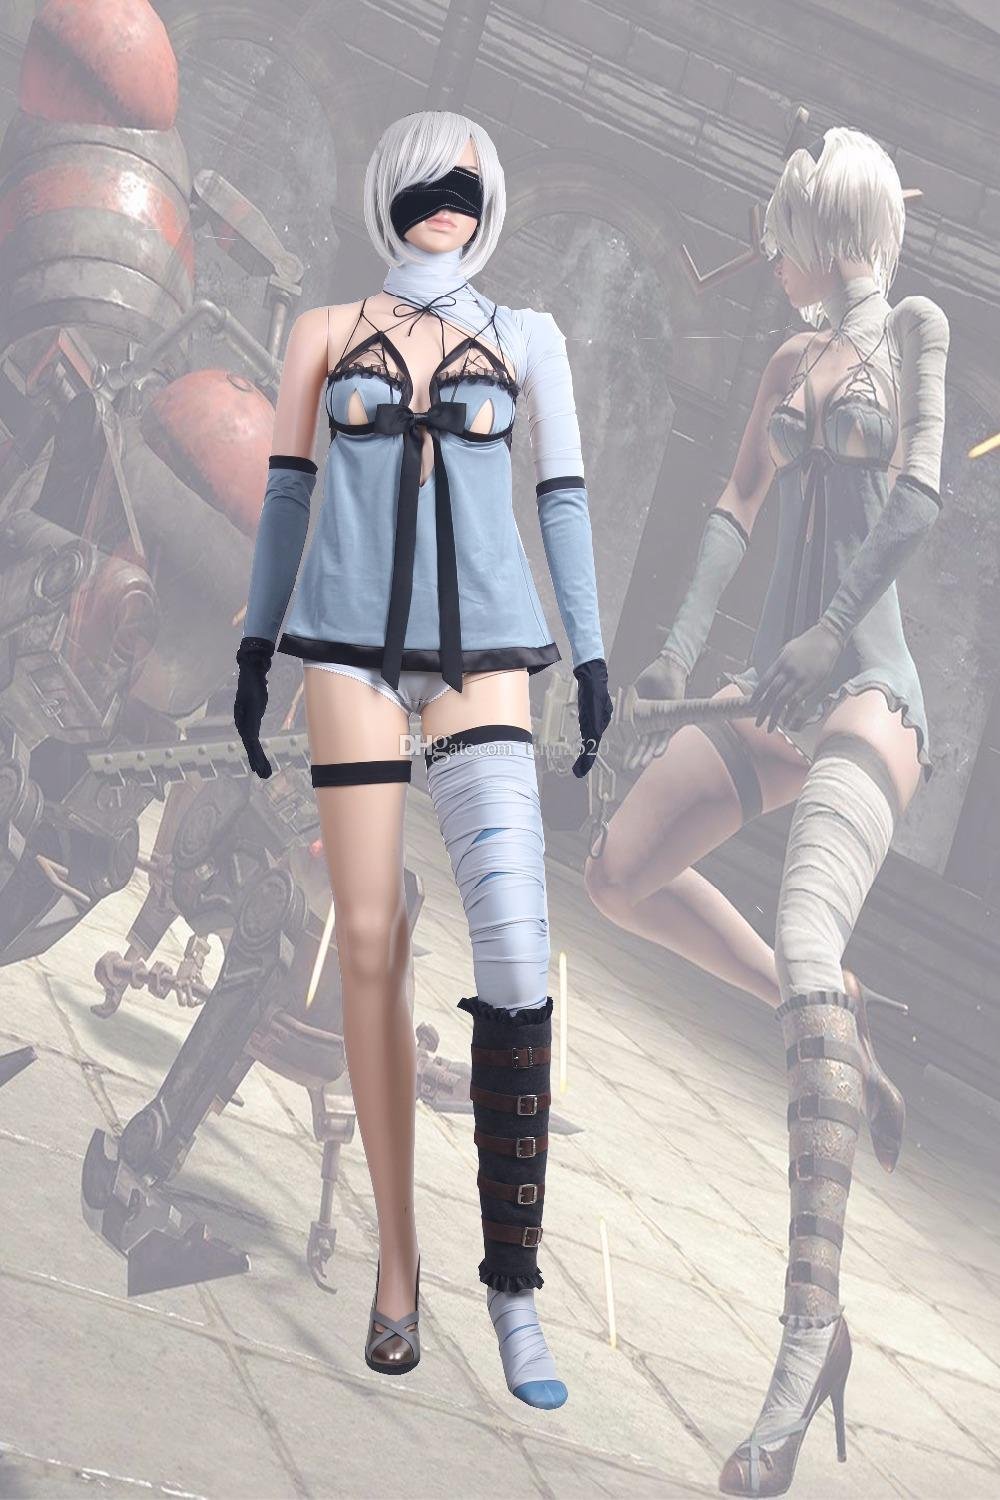 Premise Indicator Words: 2017 New Game NieR Automata 2B Cosplay Costumes YoRHa No